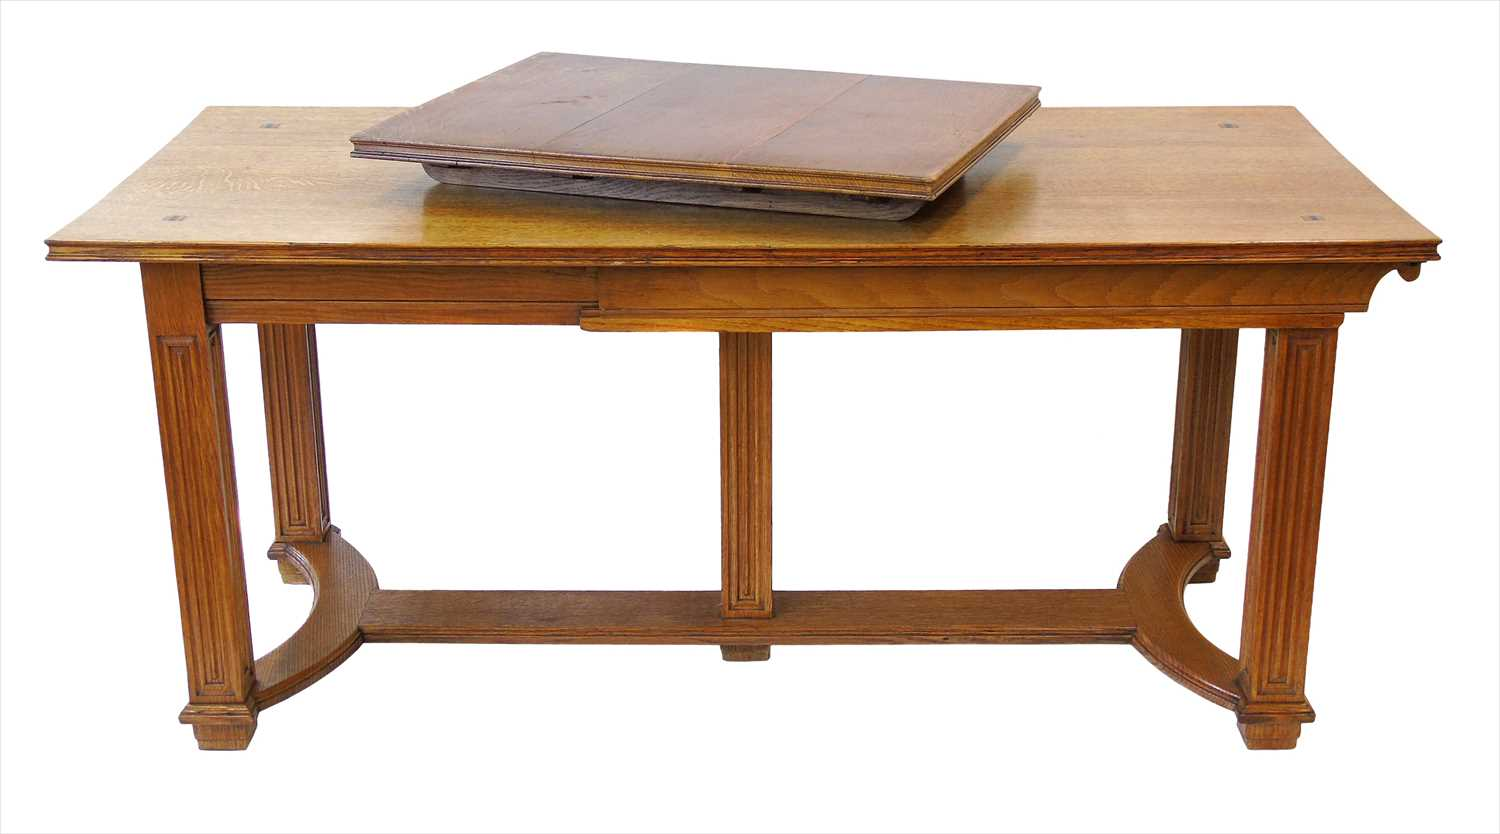 216 - Early 20th century Art Deco design extending dining table.